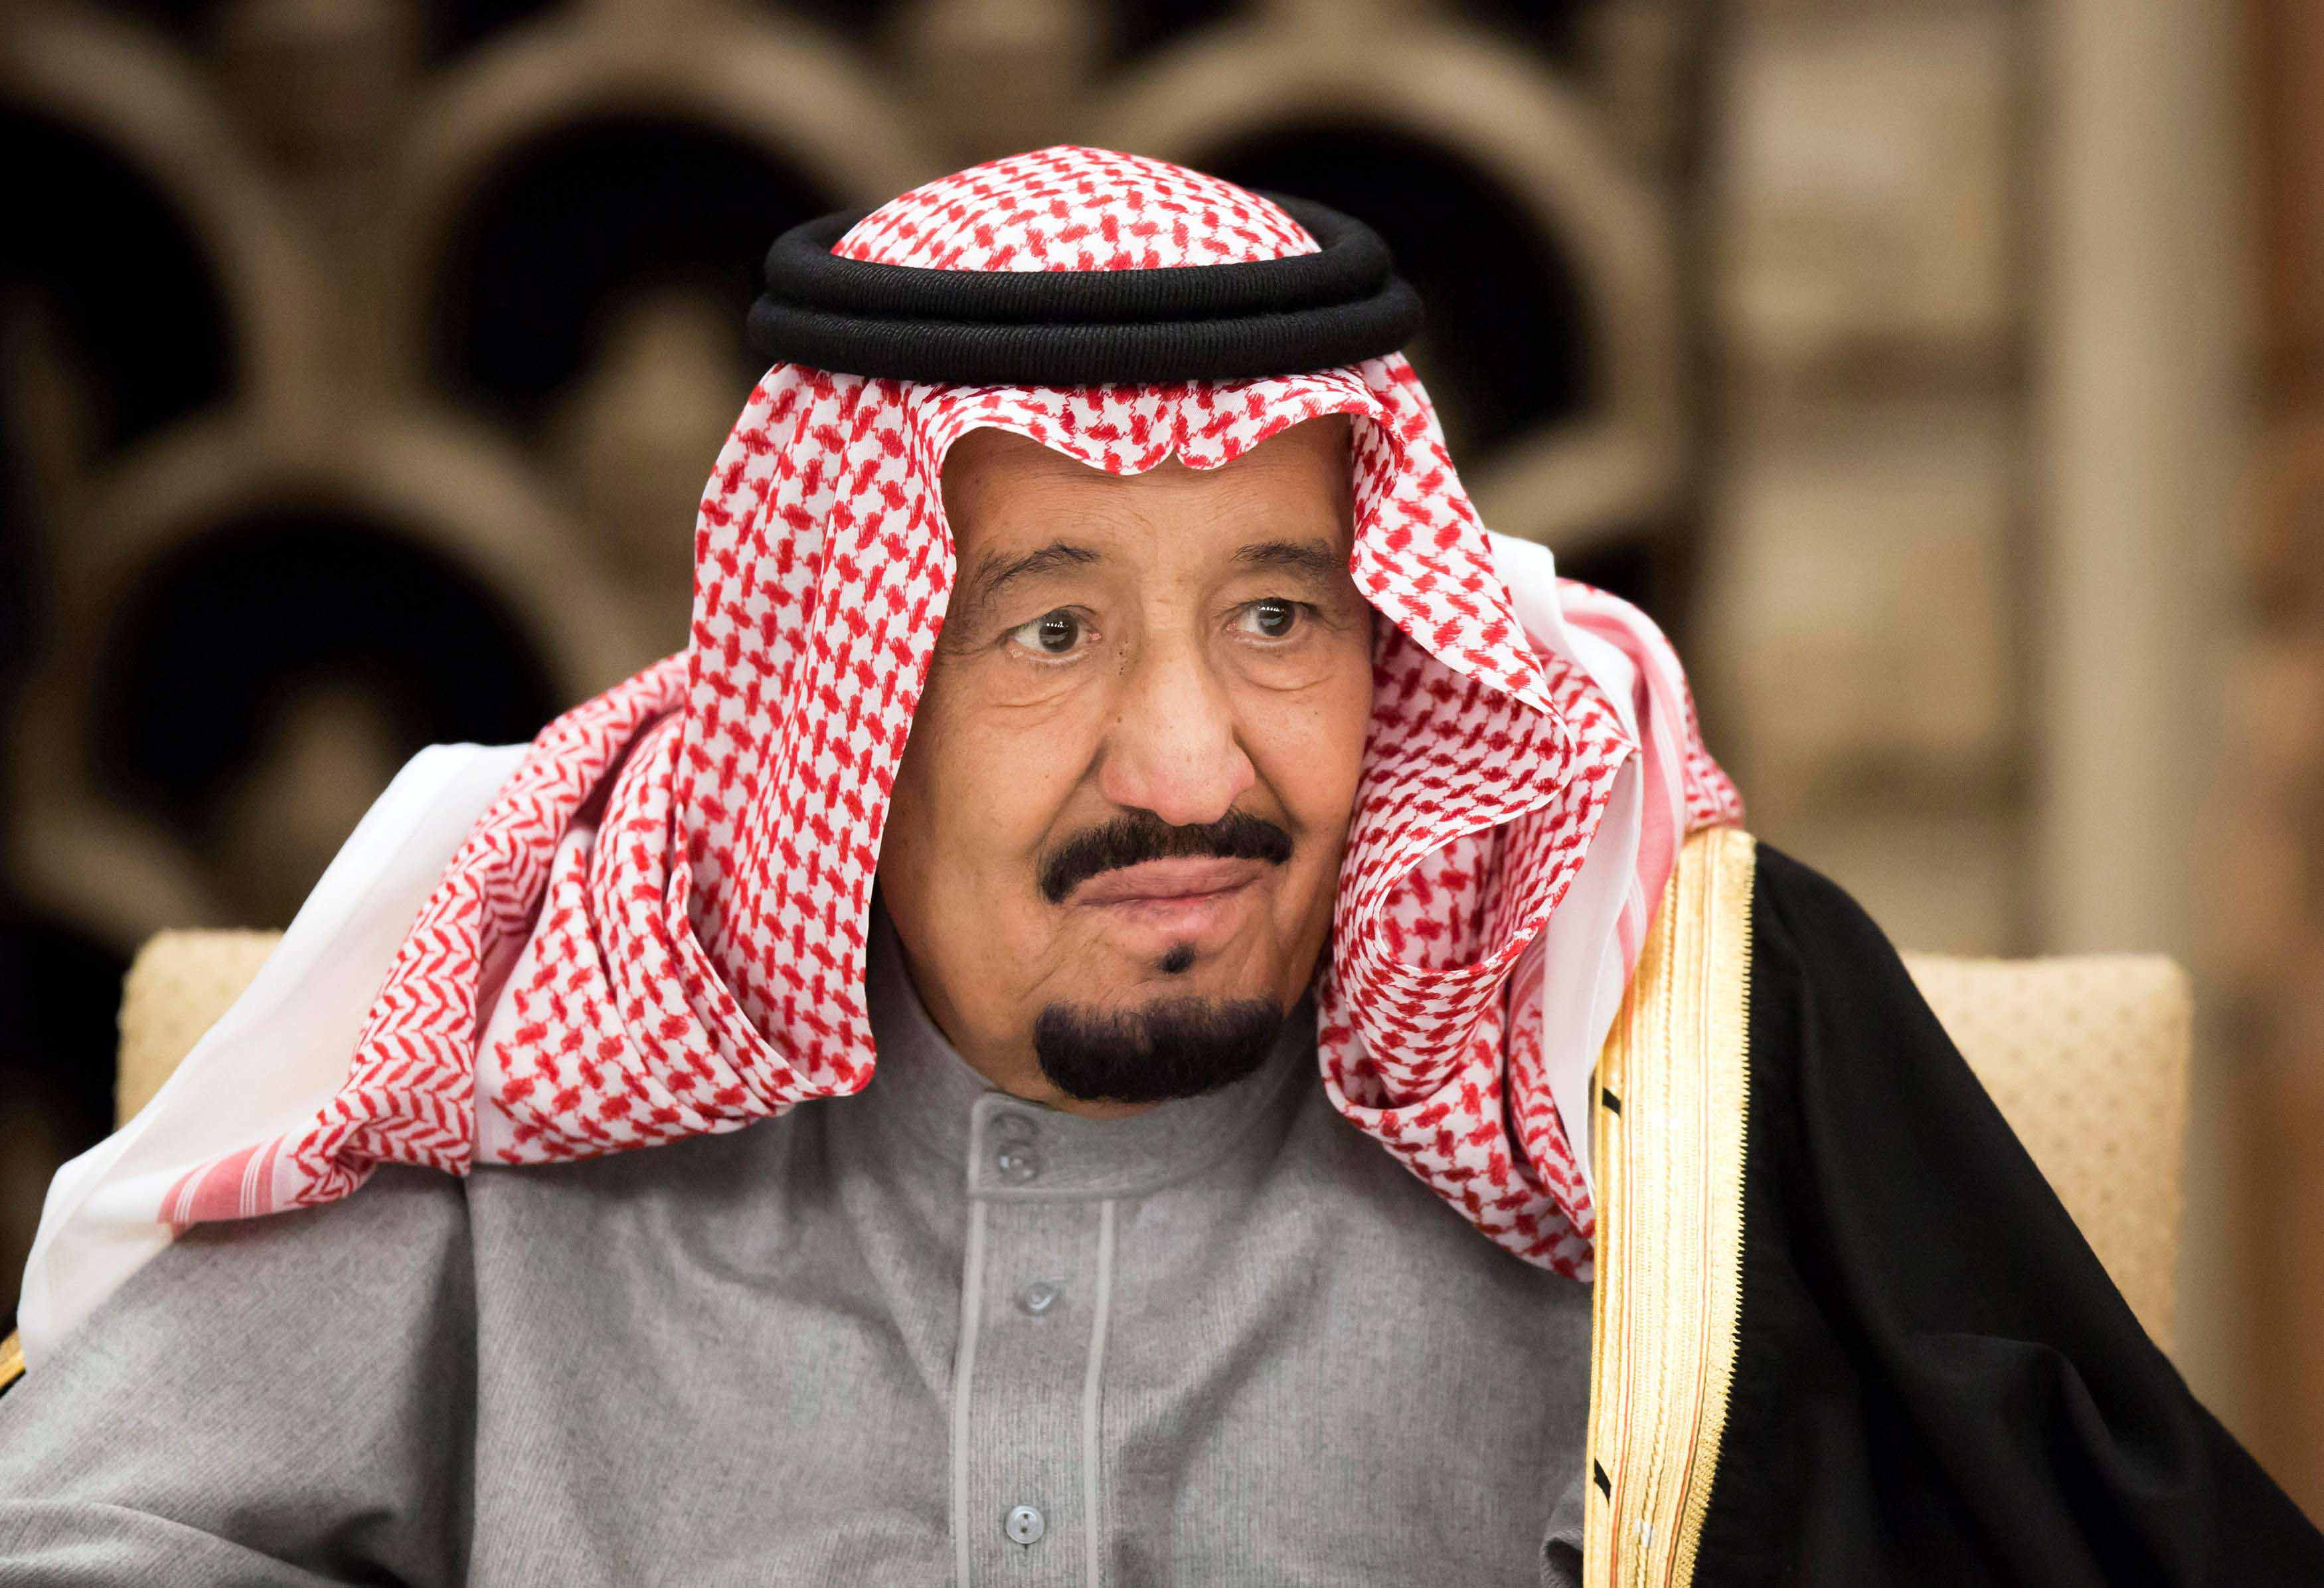 Saudi rulers appear to be shoring up support domestically, including within the royal family, following the crisis.